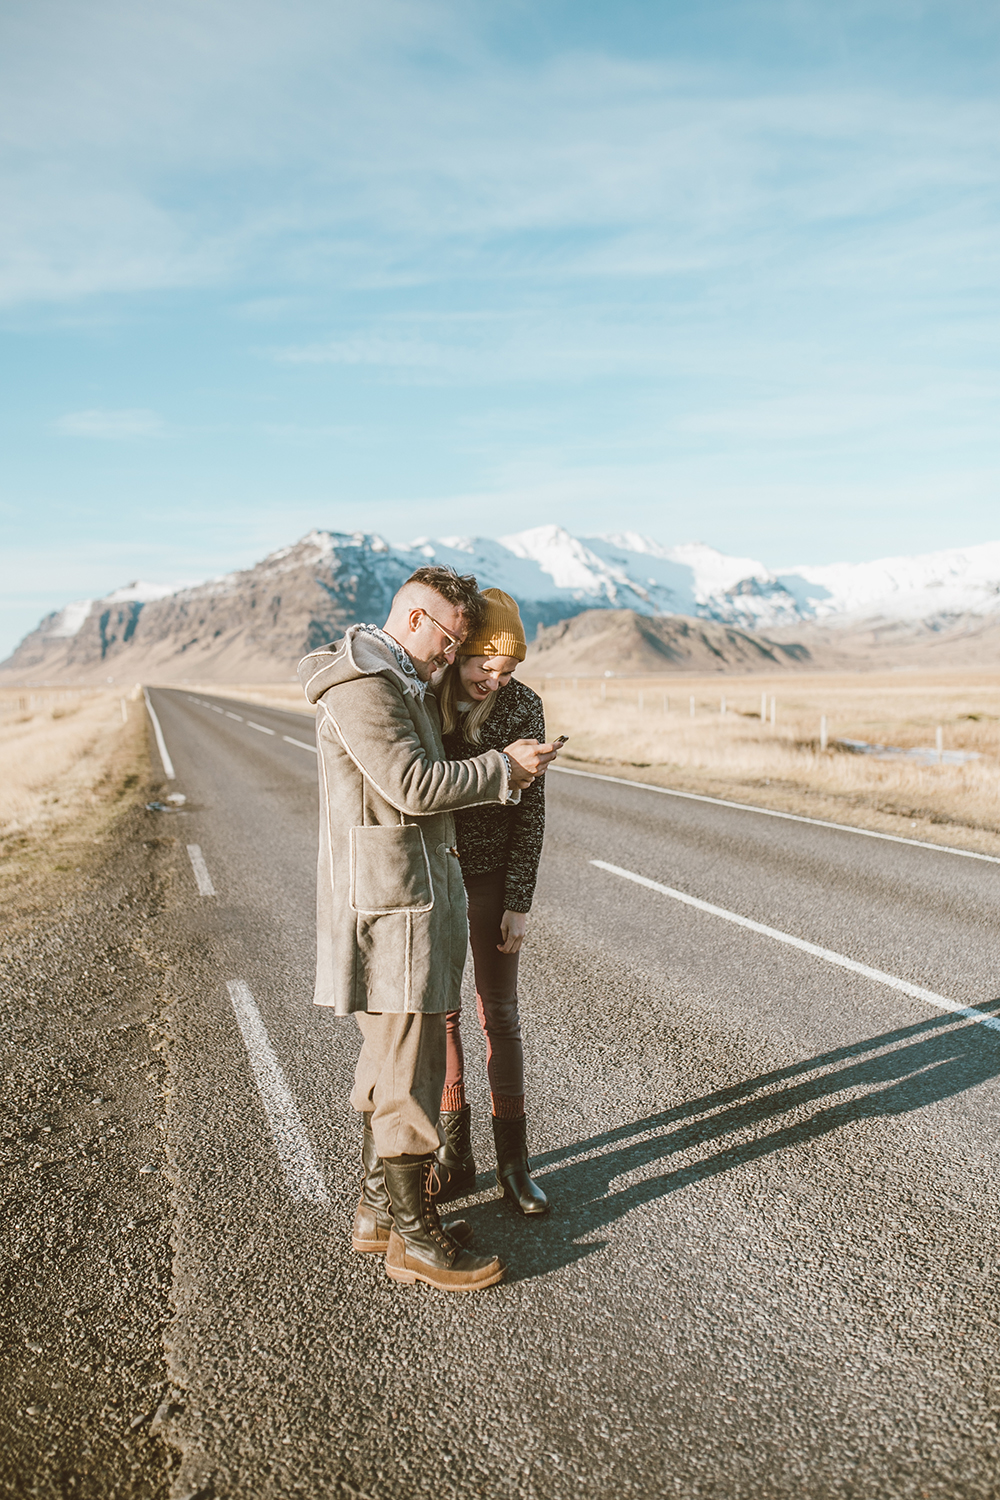 1-livvyland-blog-olivia-watson-travel-lifestyle-blogger-iceland-road-trip-what-to-do-pack-reykjavik-noken-travel-guide-best-friends